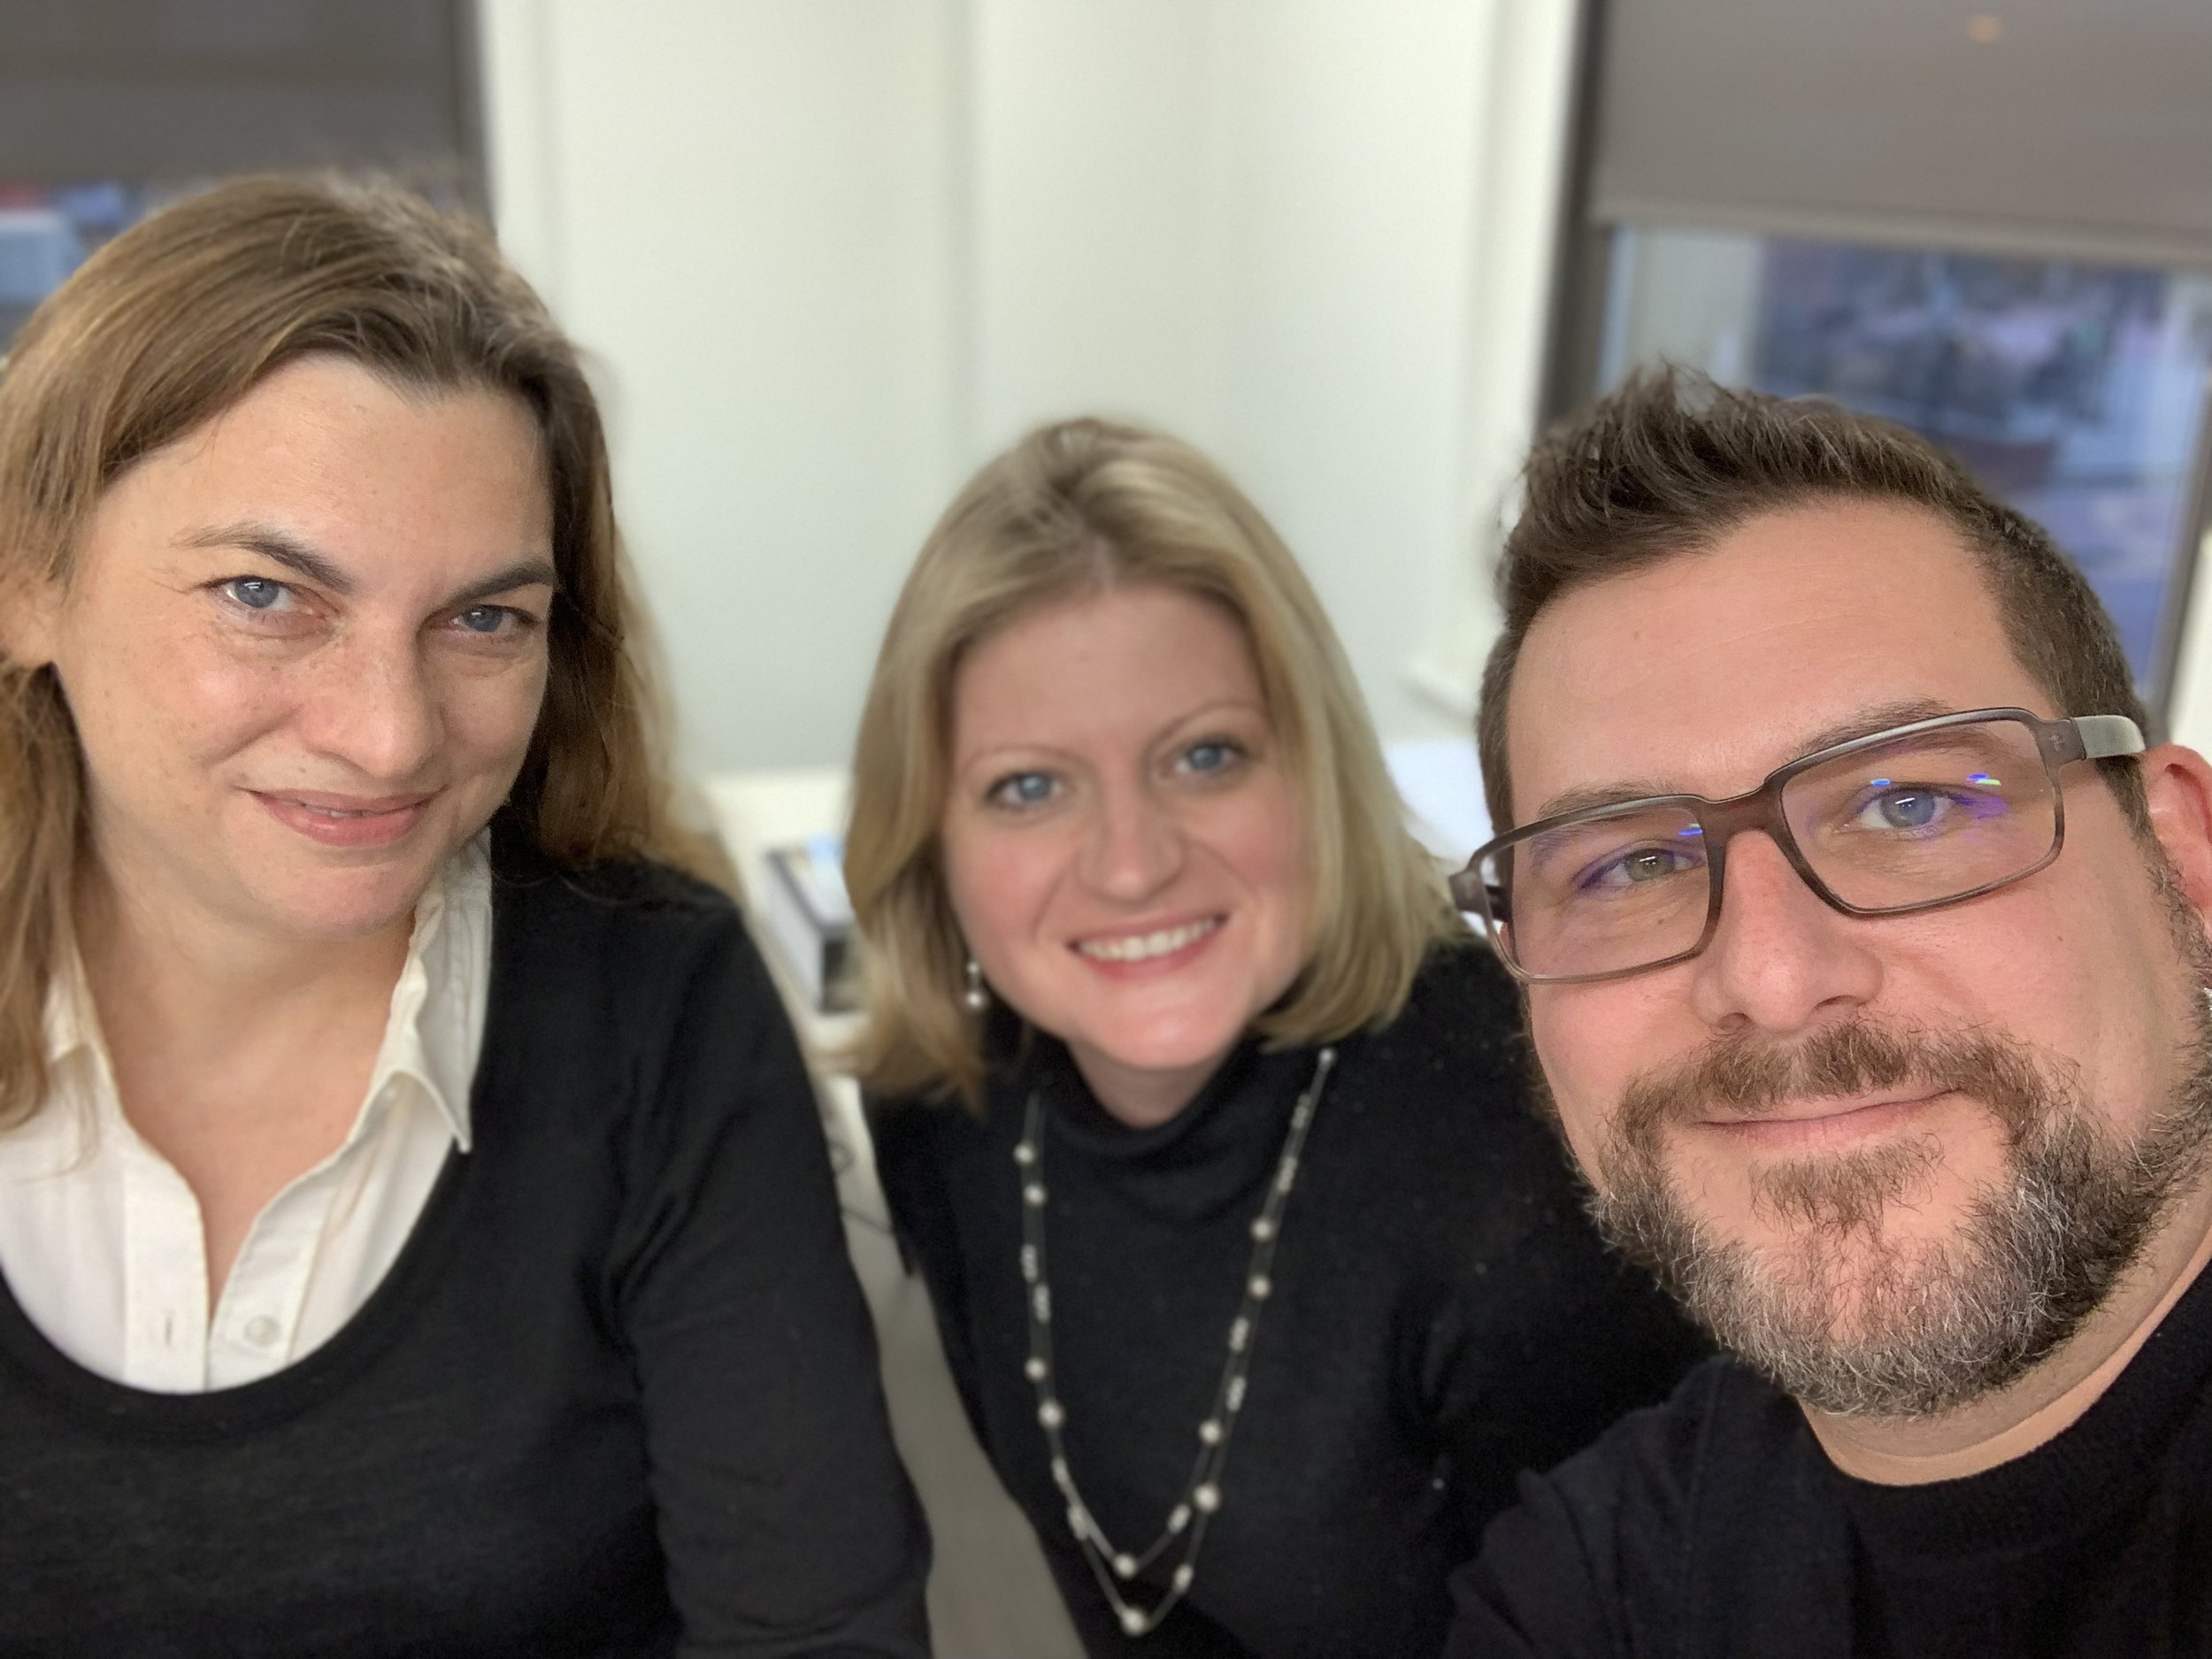 Sam, Megan, and I clowning around (all in black) in the office.